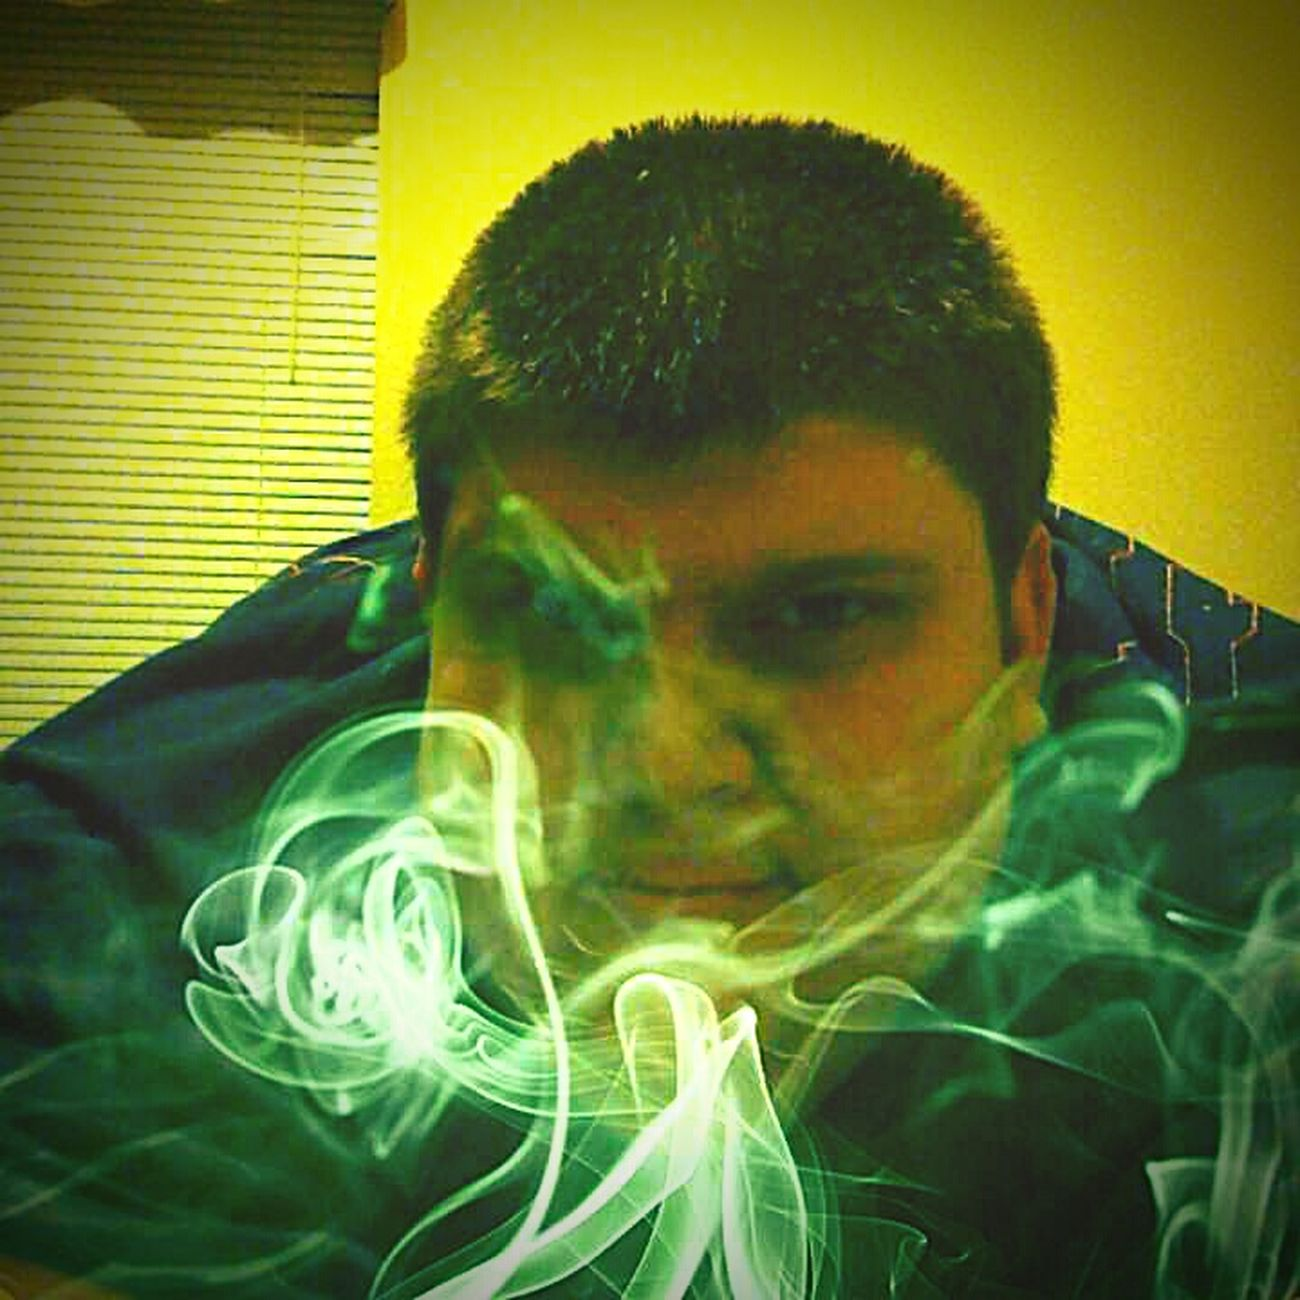 Matterifics World Of Wonders Matterificly Mistified Matterificly You Matterificly You Dude Green Smoke Of Wonders Boys Check This Out Taking Photos That's Me Hanging Out